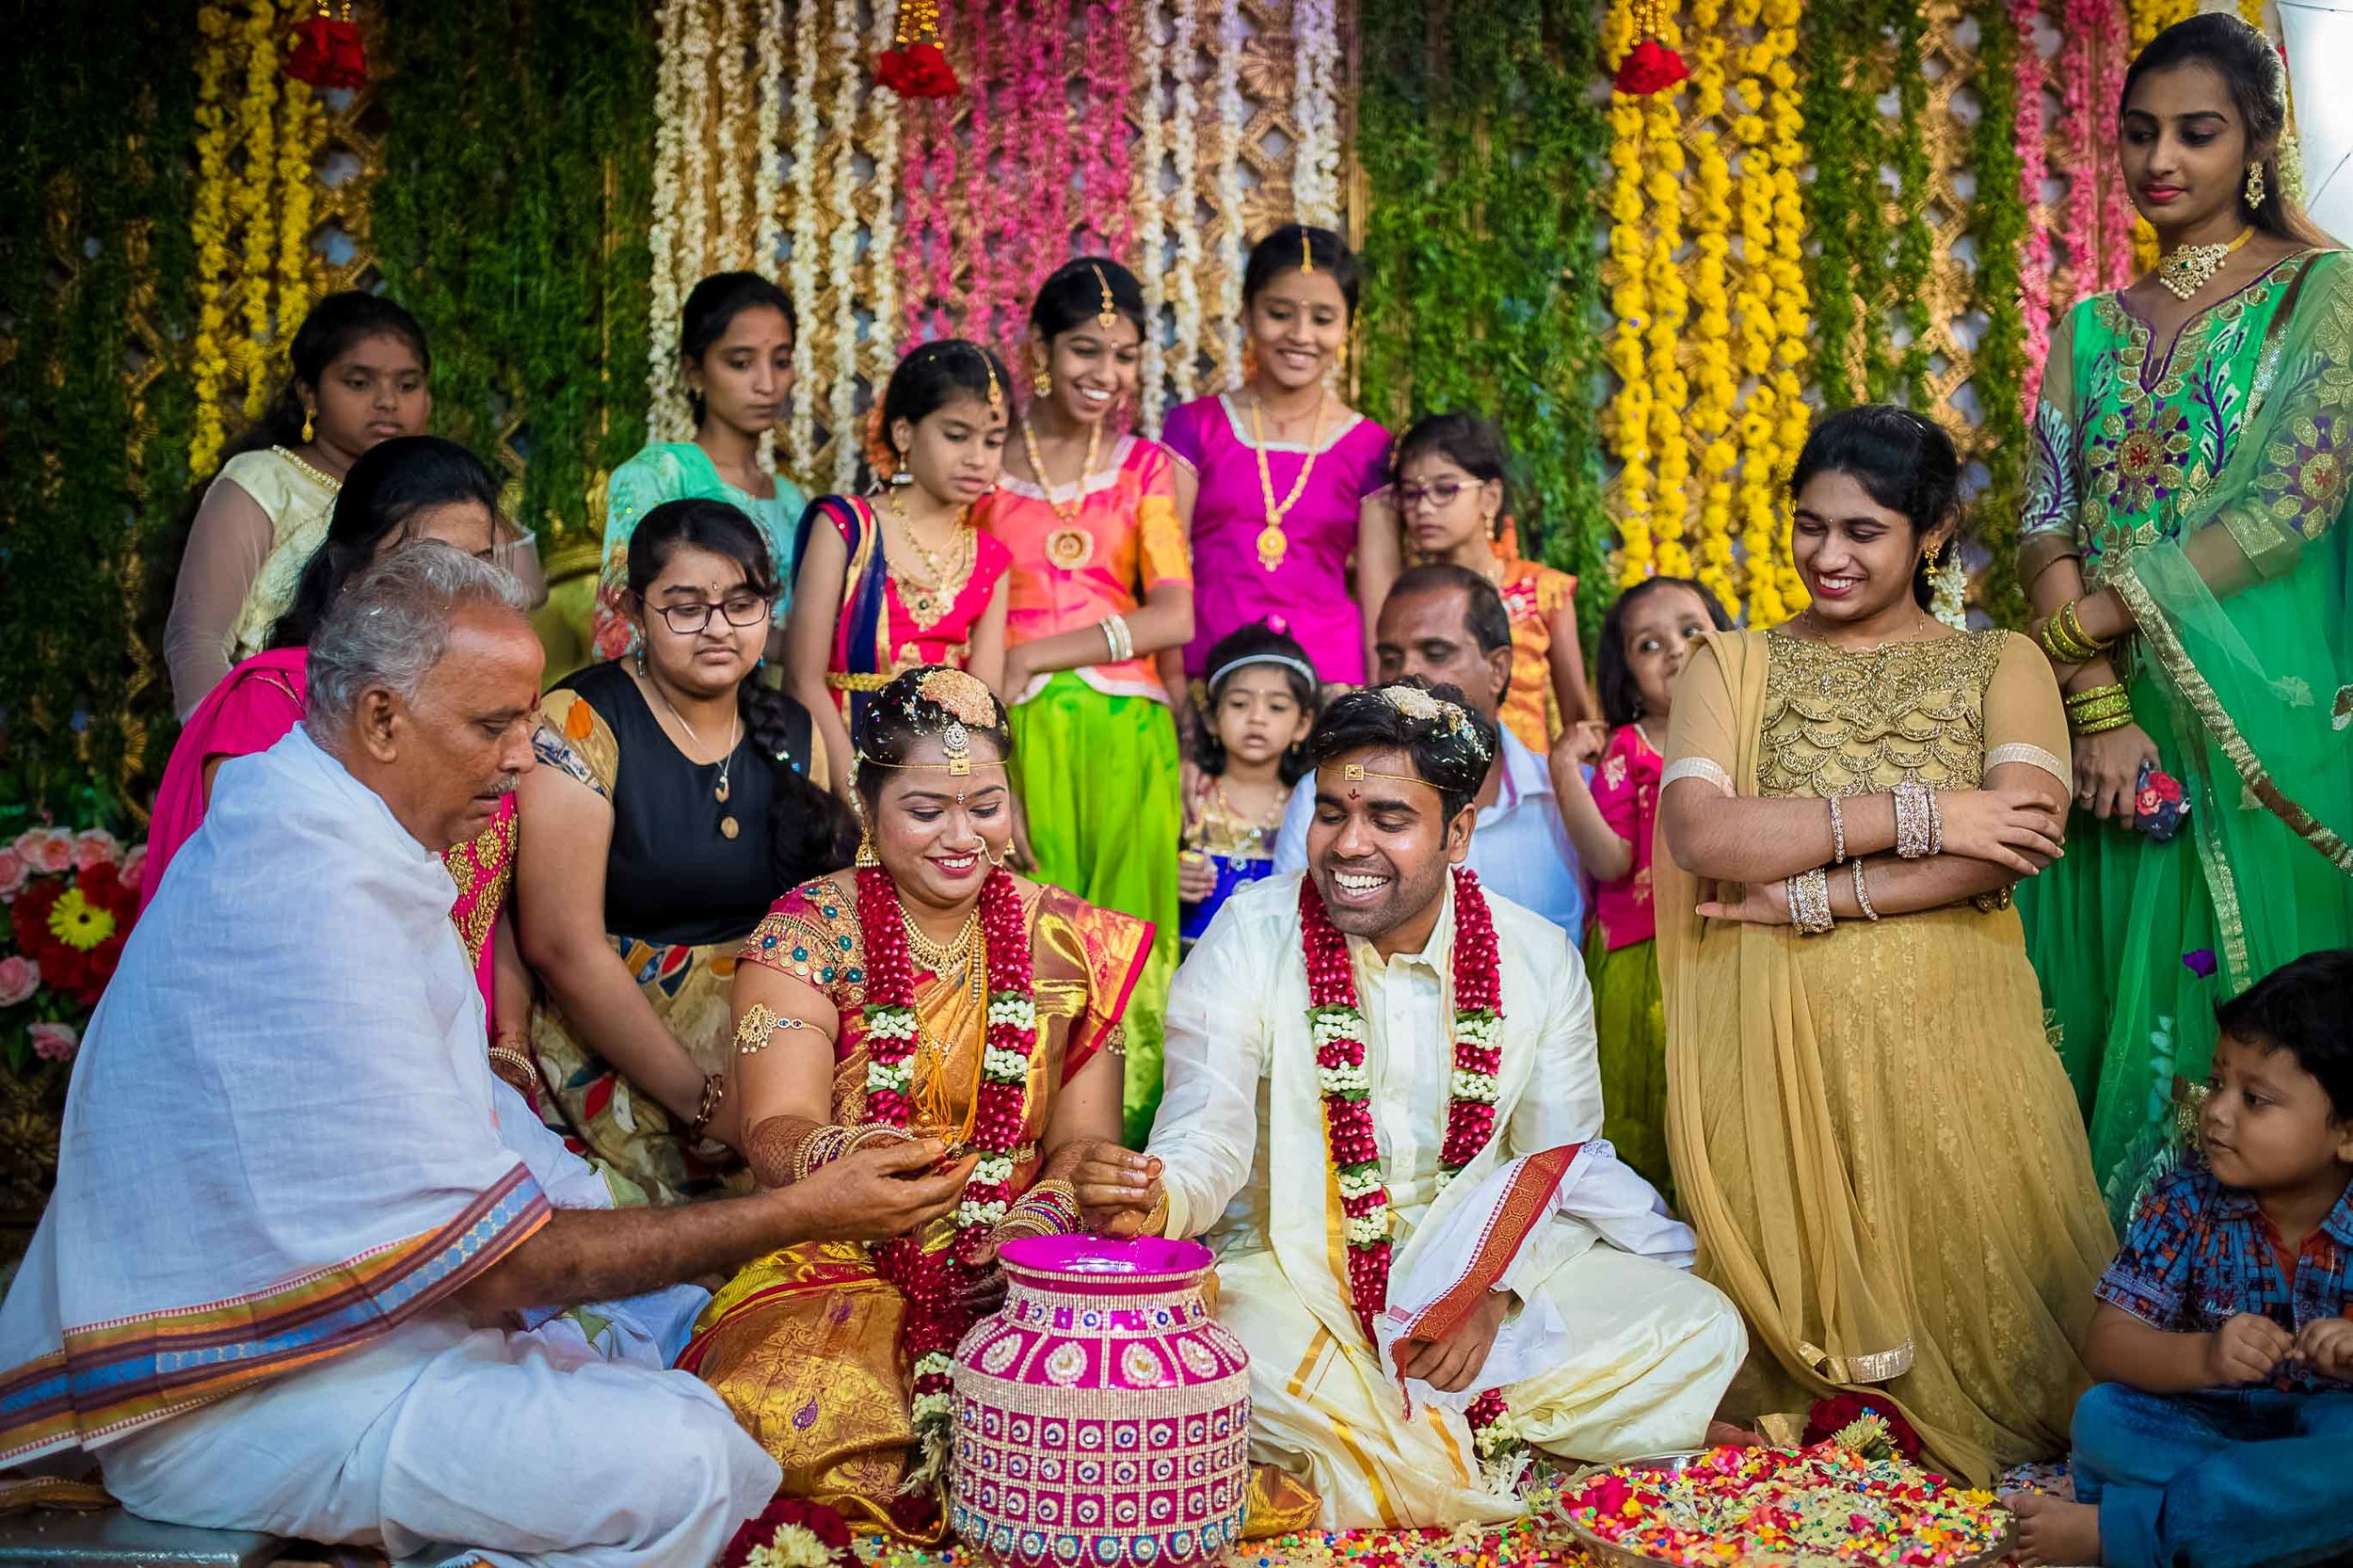 Pixel-Chronicles-Alekhya-Chaitanya-Nellore-Candid-Wedding-Ring-Finding-Ceremony-25.jpg